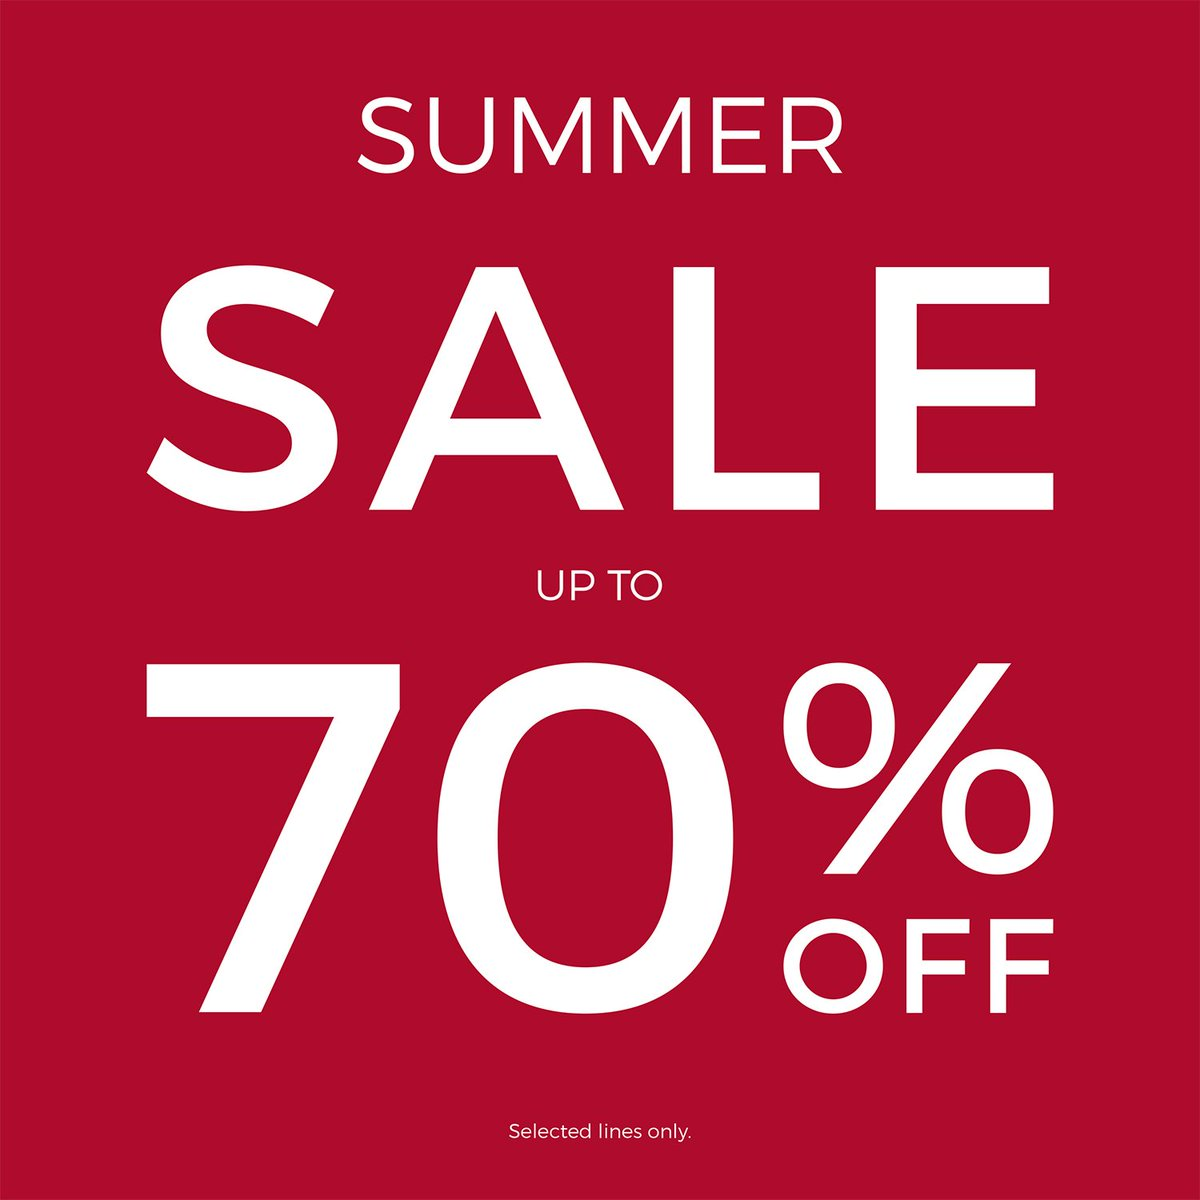 fc64add1 On until 23 August and includes favourite designer scents at unmissable  prices; Marc Jacobs, Hugo Boss, Armani and lots  more.pic.twitter.com/pNohMVYr71